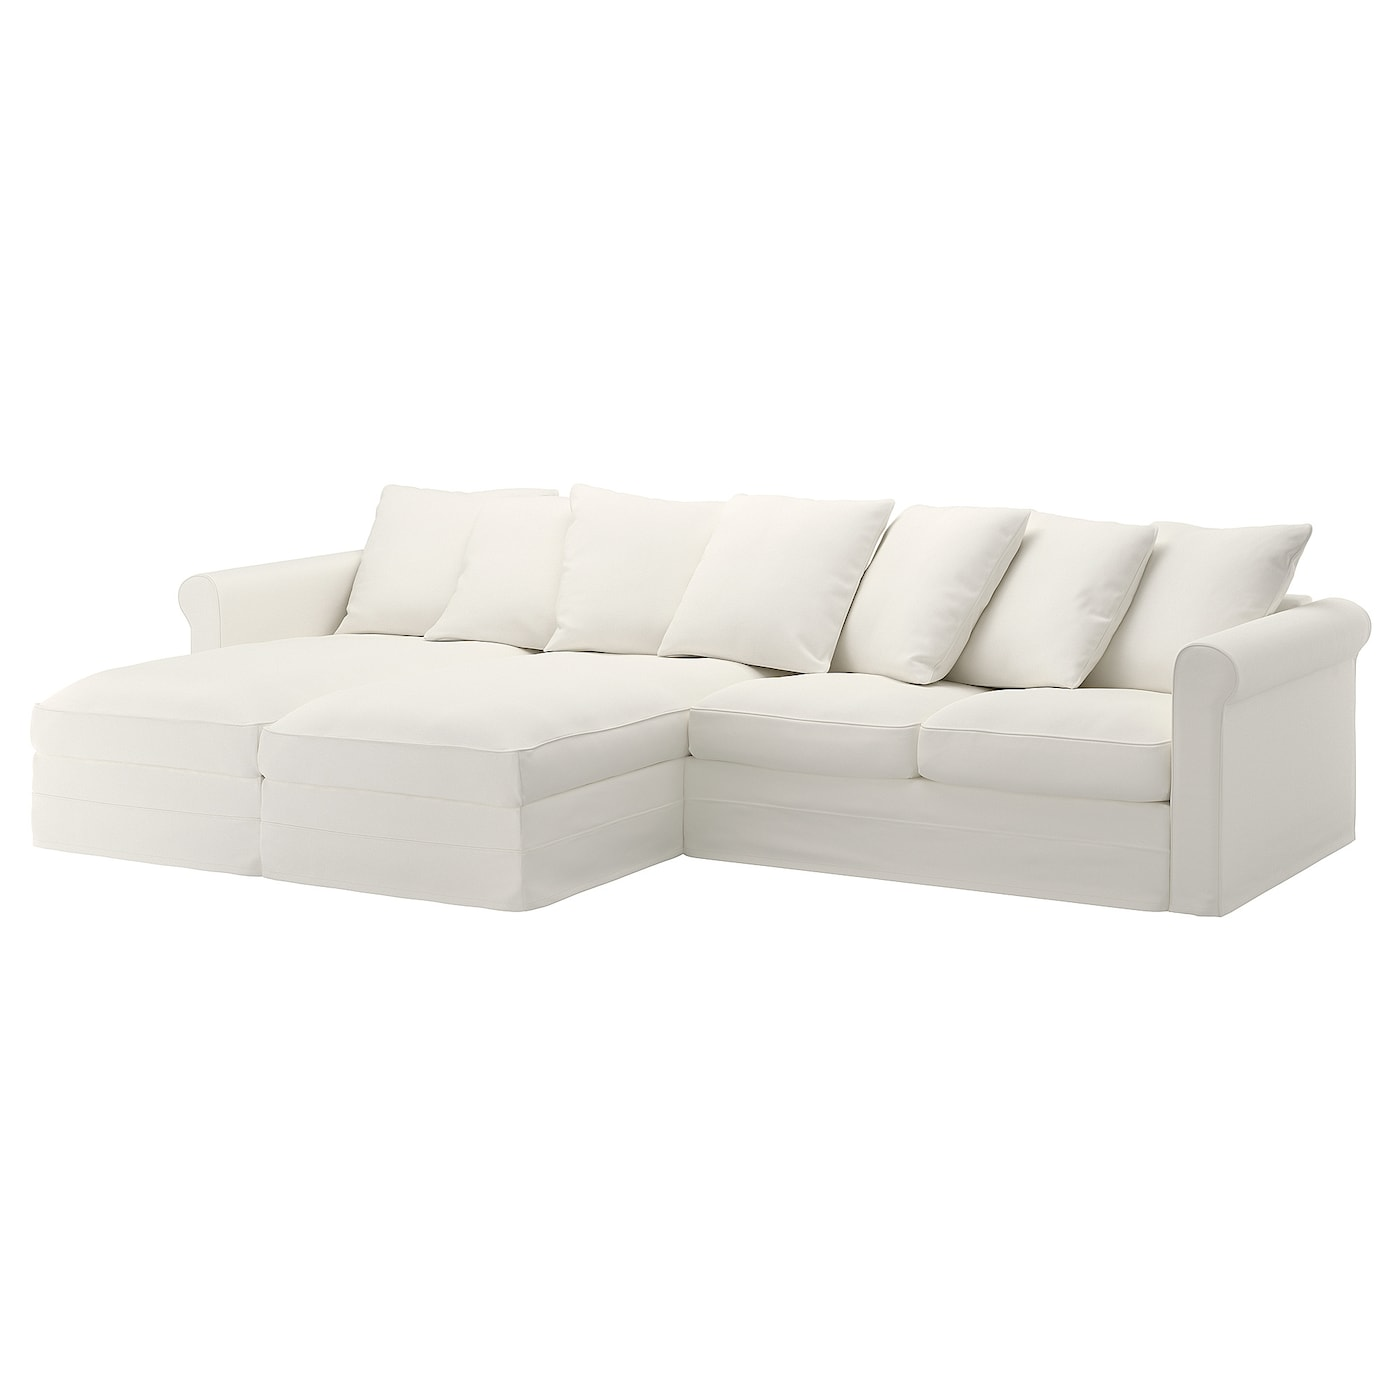 Wundervoll Perfect Preview Of Grnlid With Sofa Wei Beige